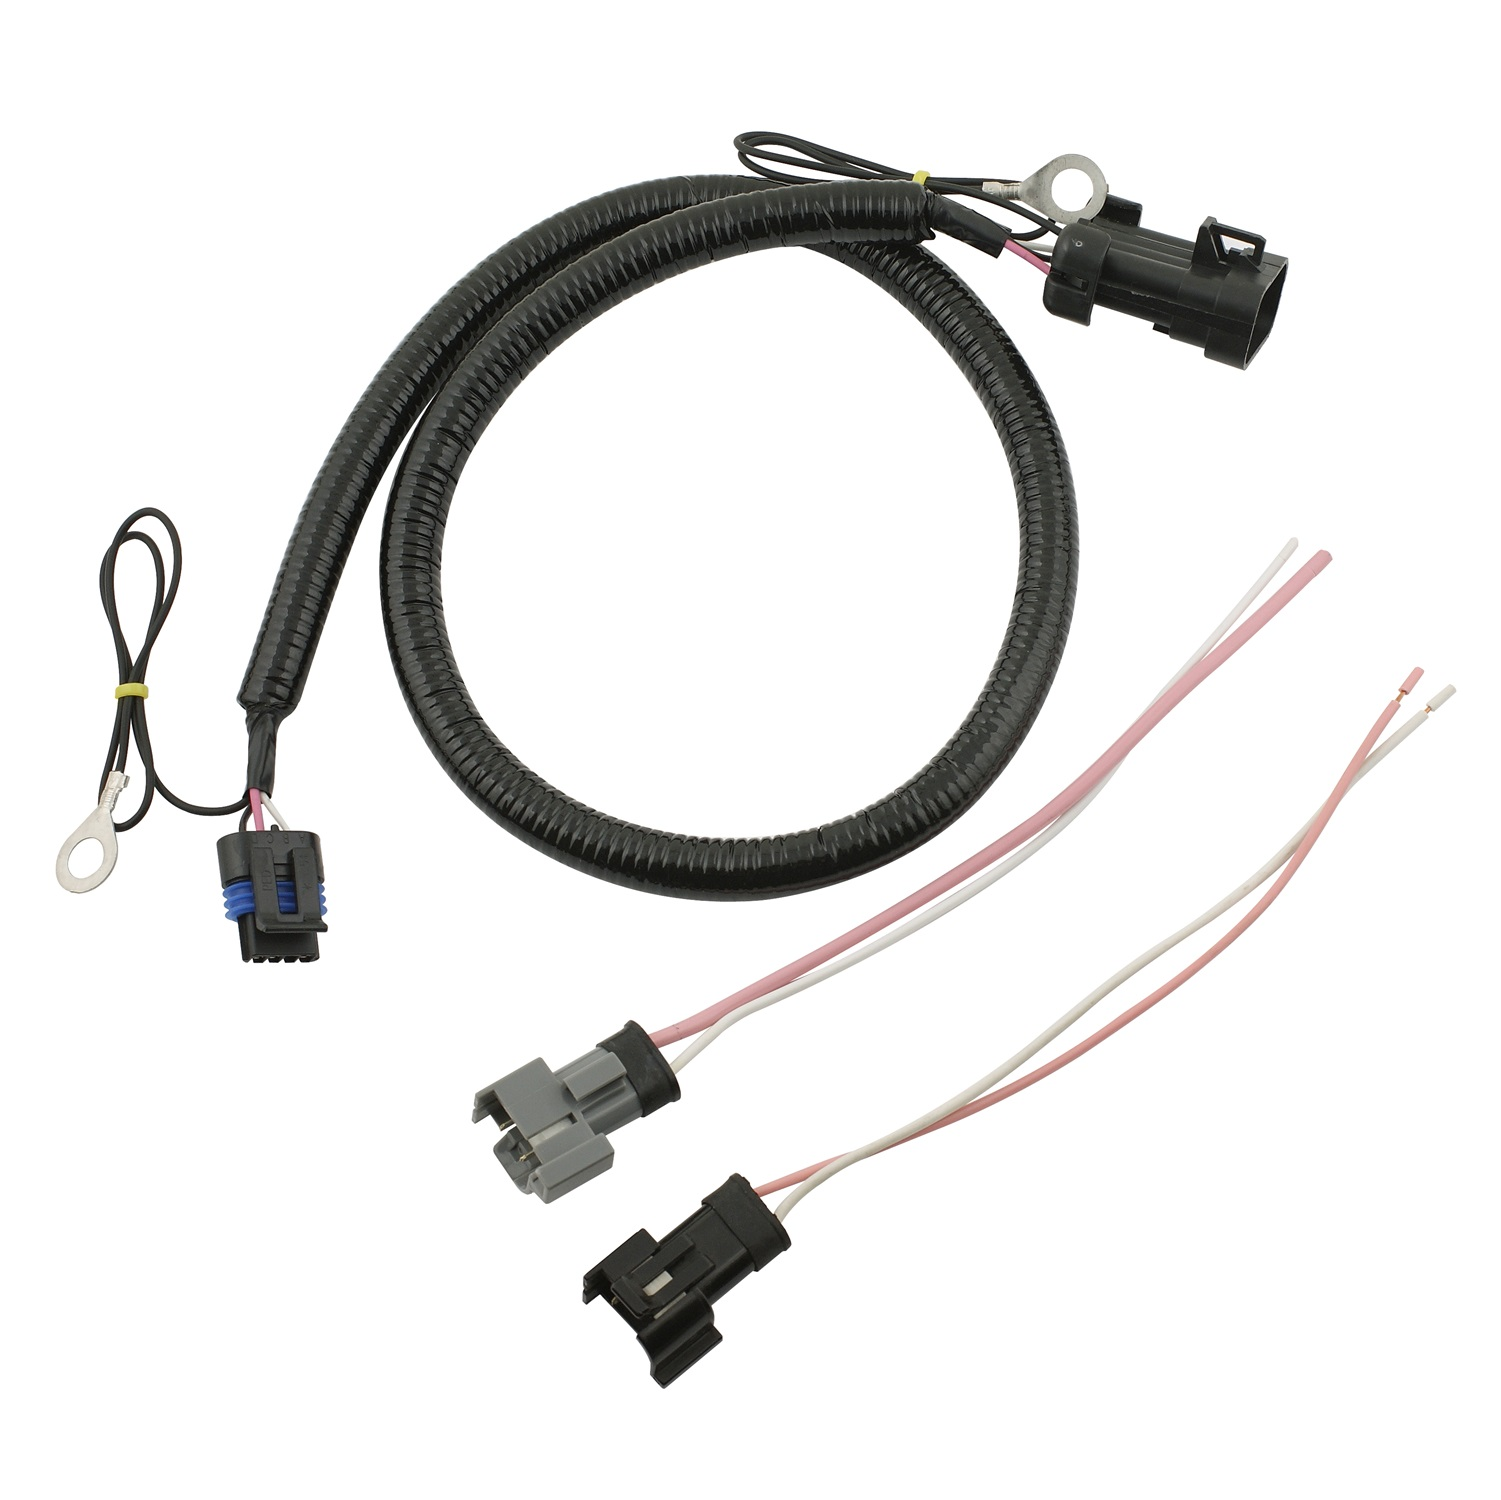 Mallory m firestorm lt ignition adapter harness fits